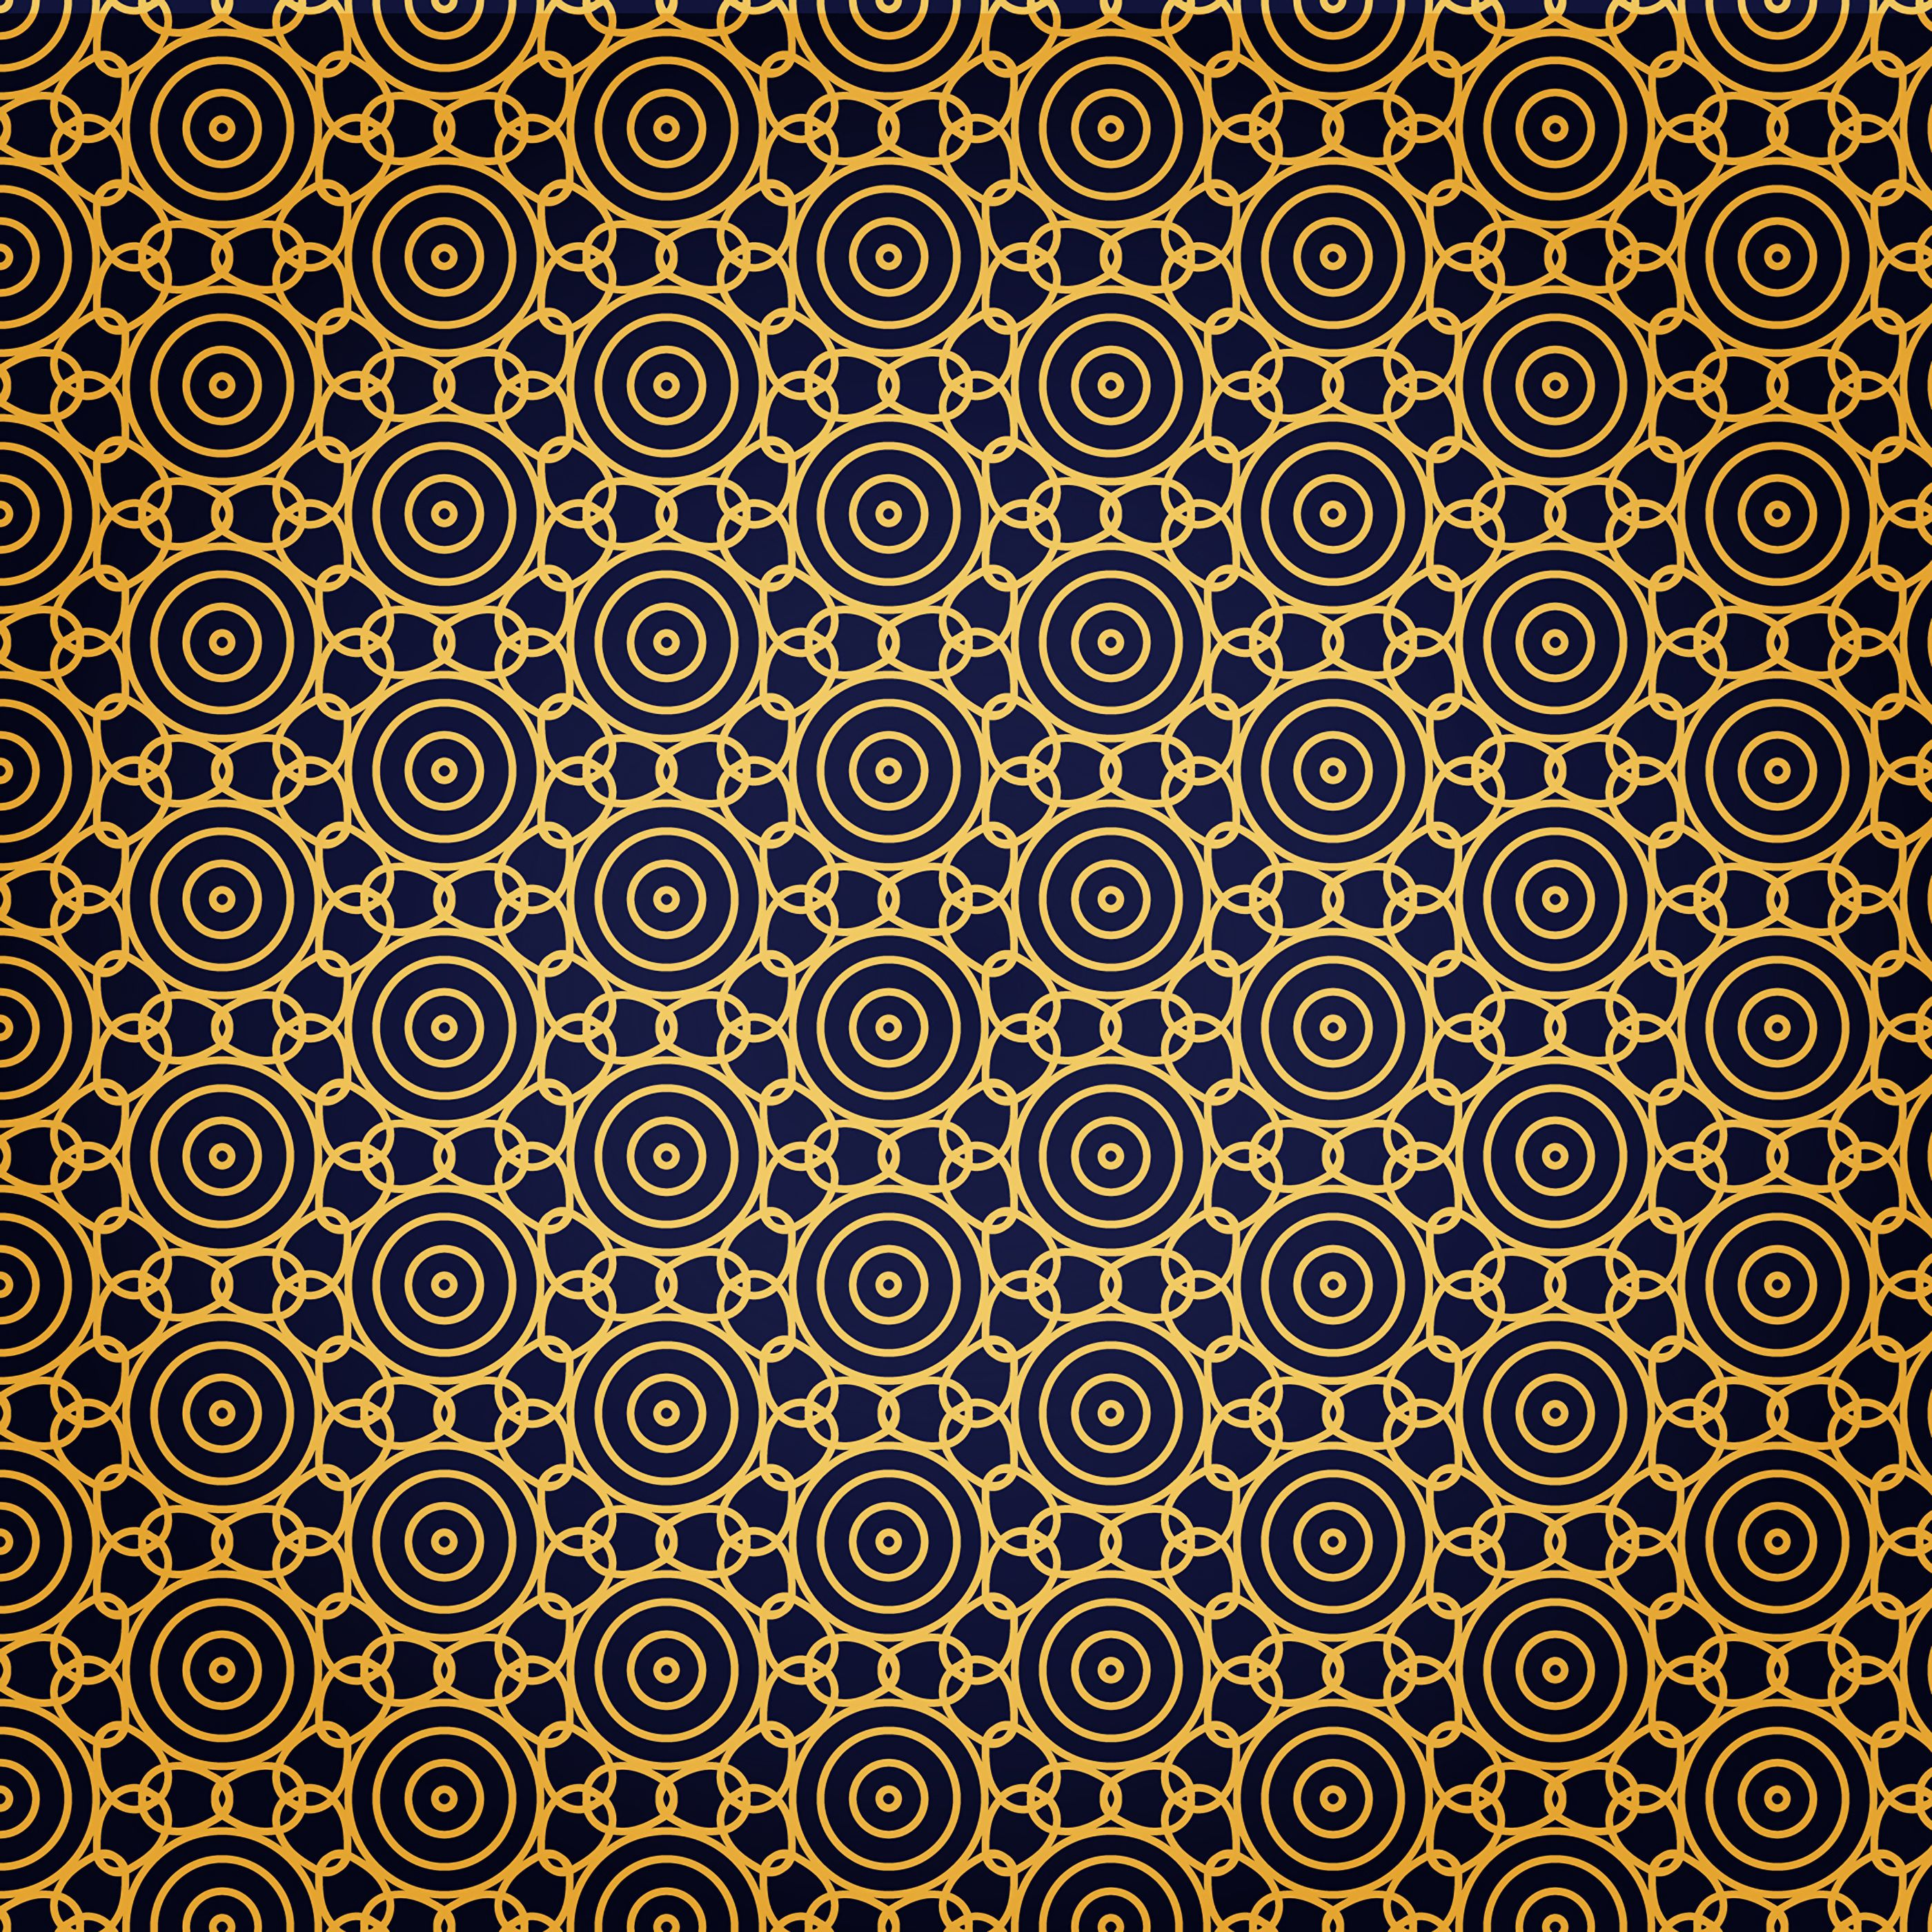 55643 download wallpaper Textures, Texture, Circles, Pattern, Gold, Golden, Chain screensavers and pictures for free